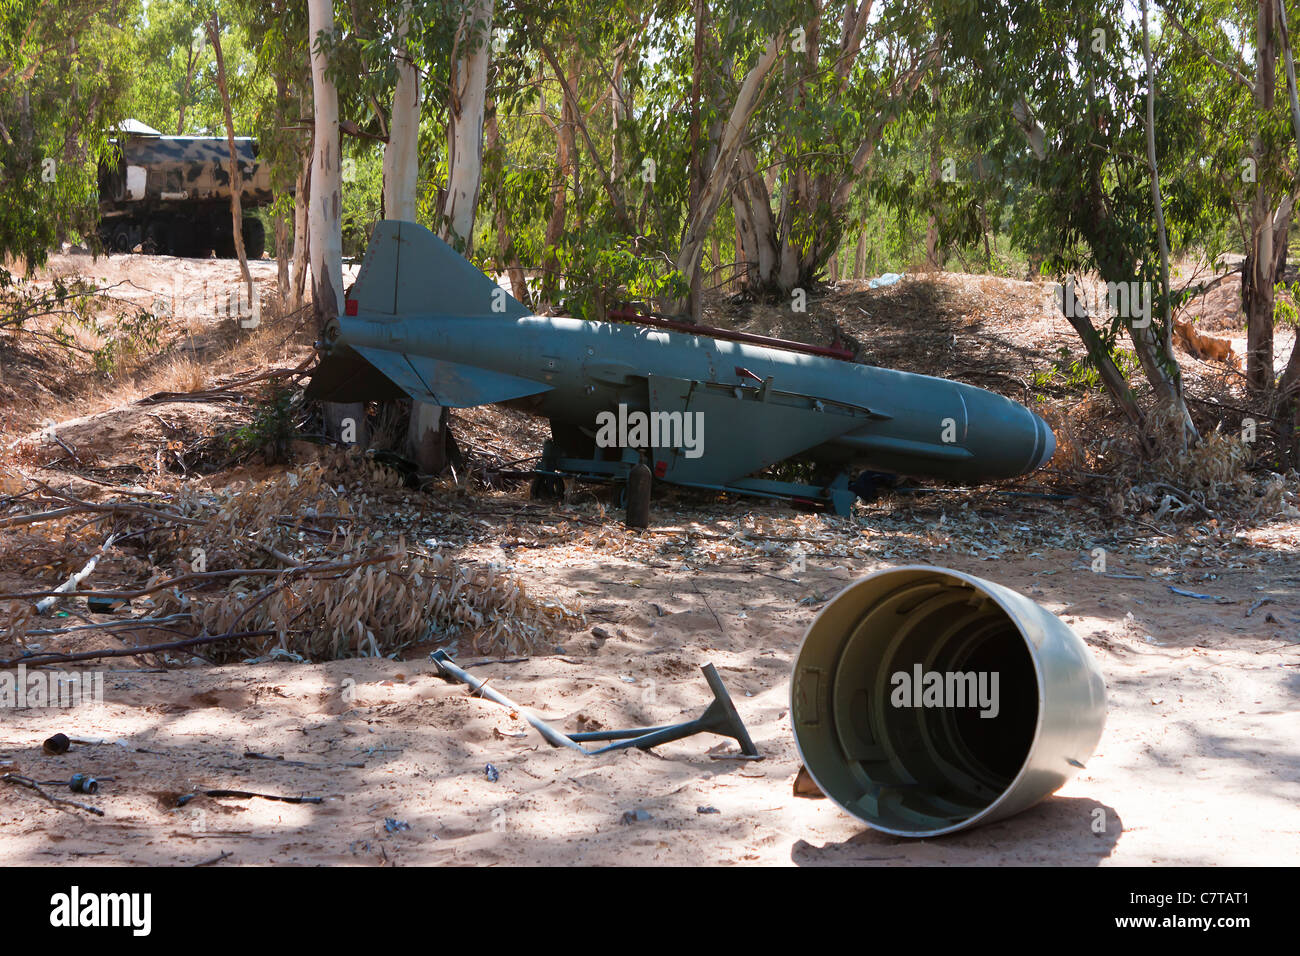 P 21 Styx  radar guided cruise missile used by Col Gaddafi - Stock Image